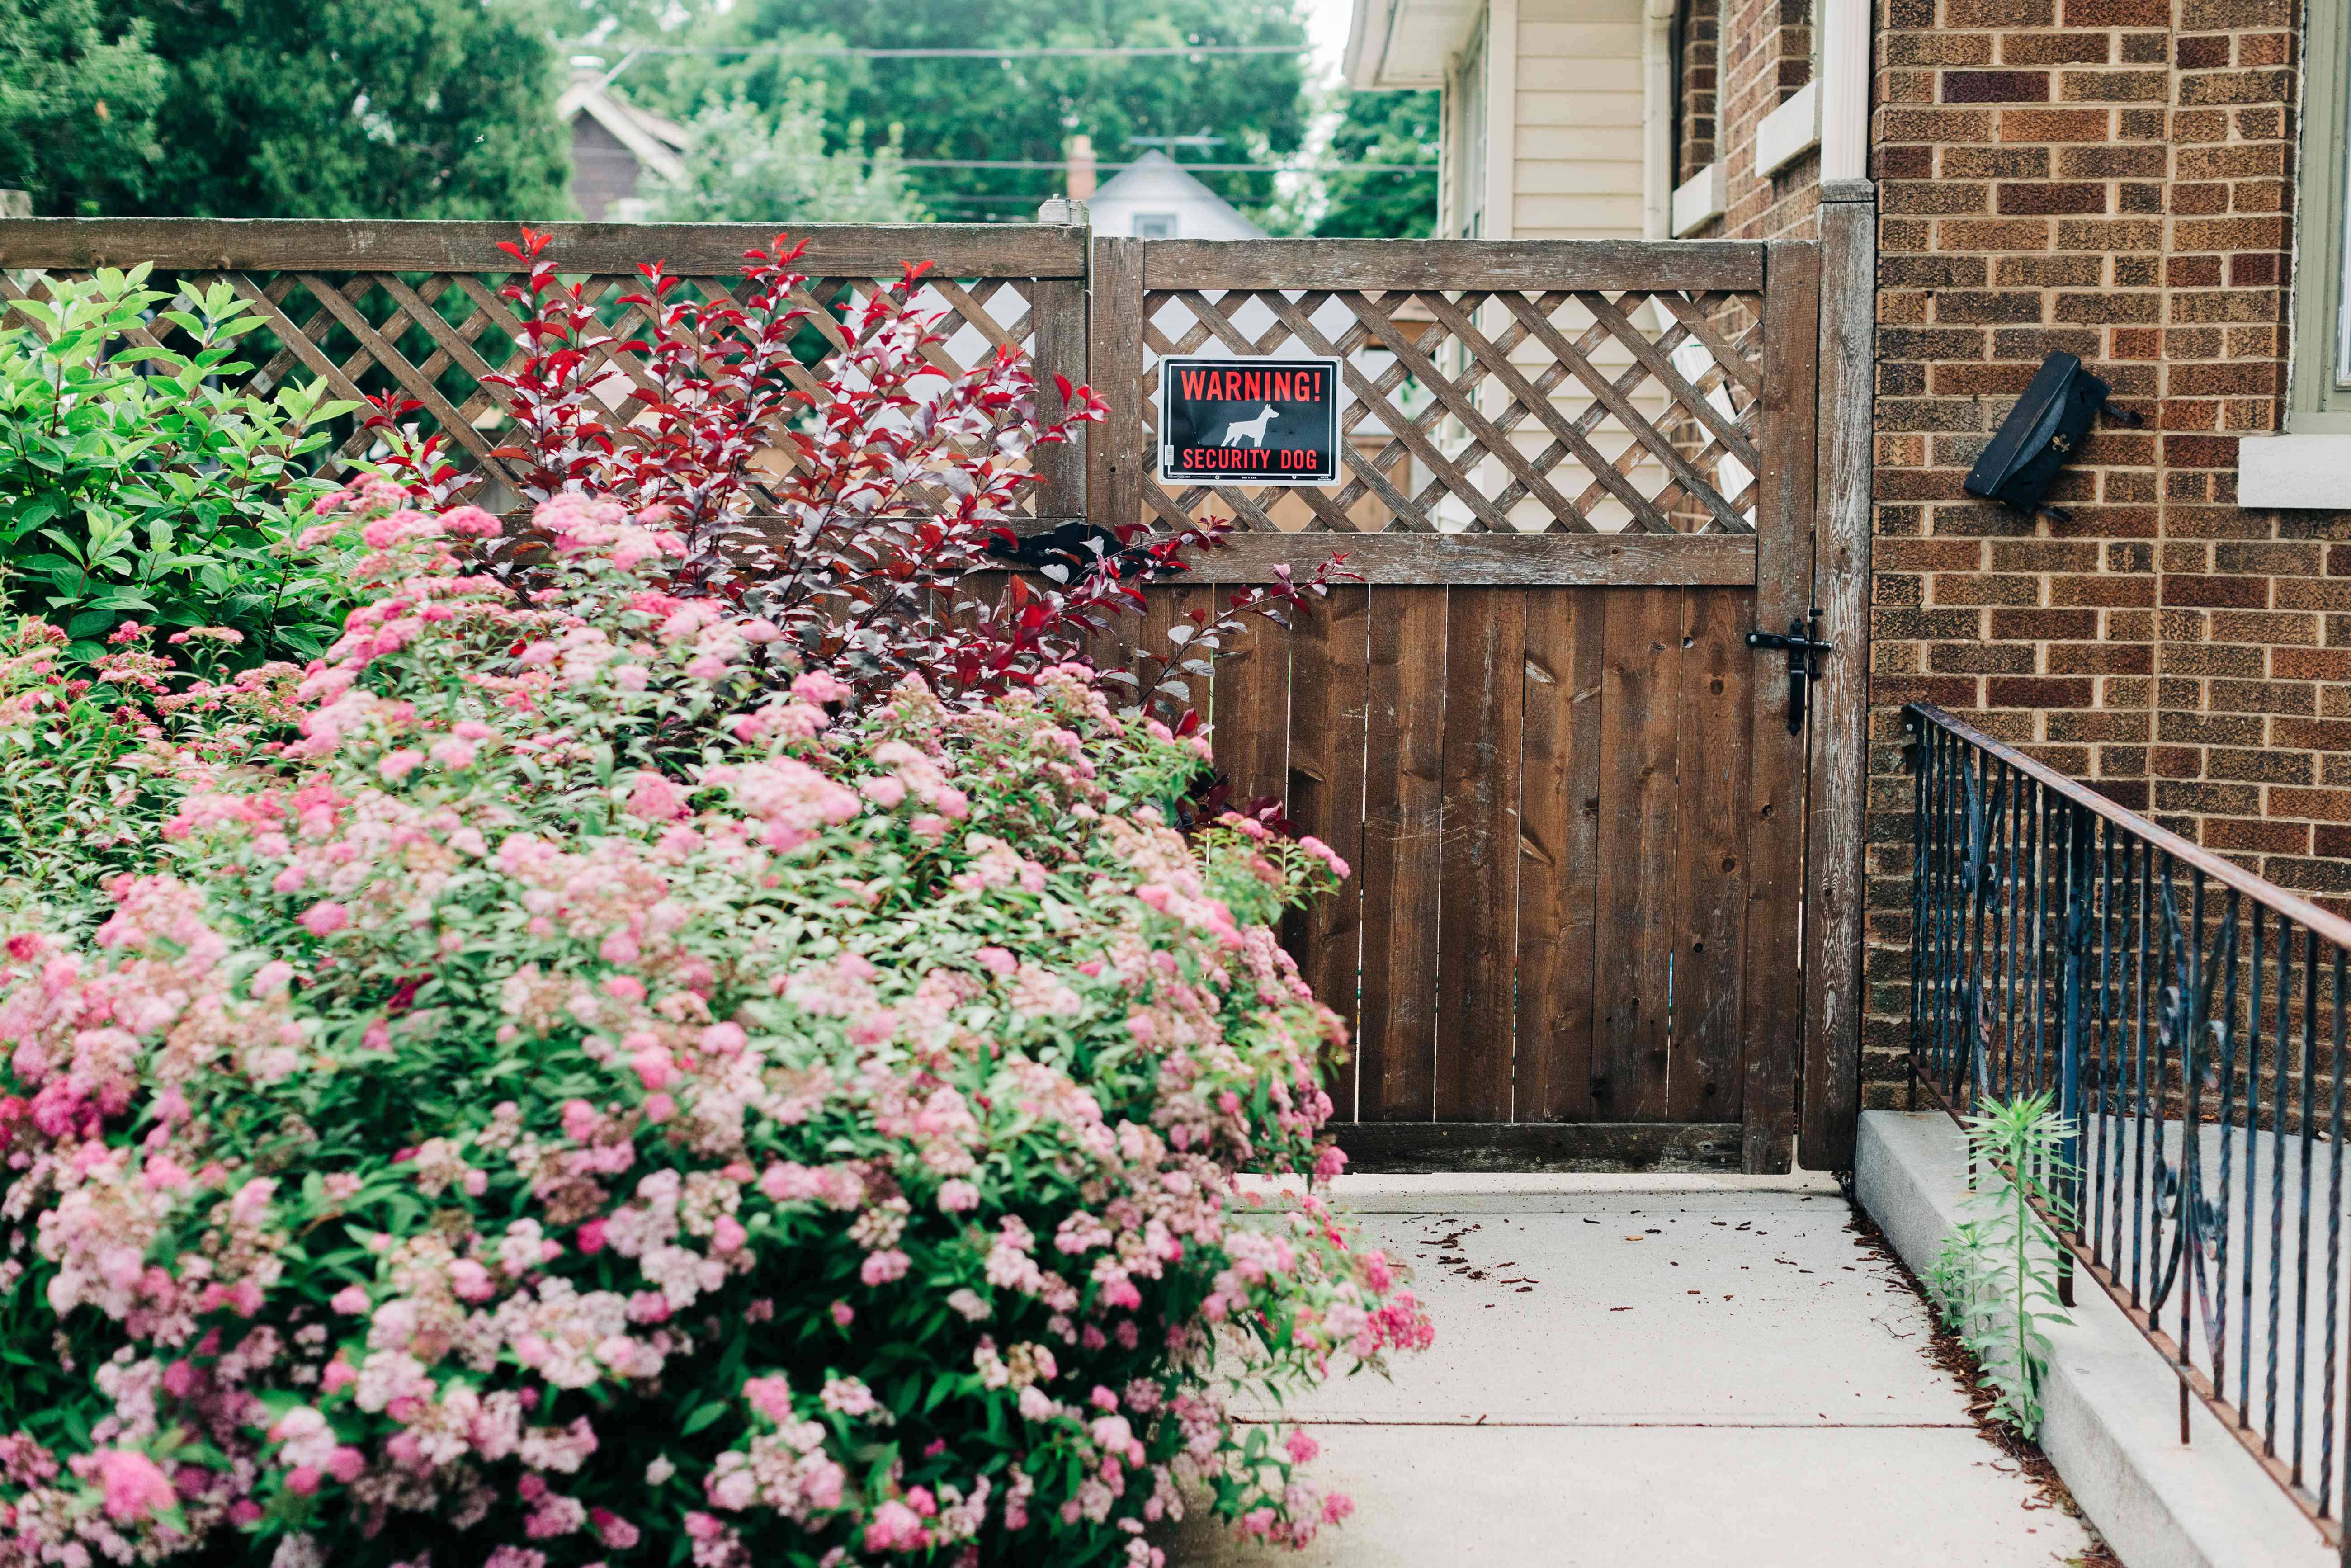 Wooden fence next to brick house with dog warning sign behind flower bushes